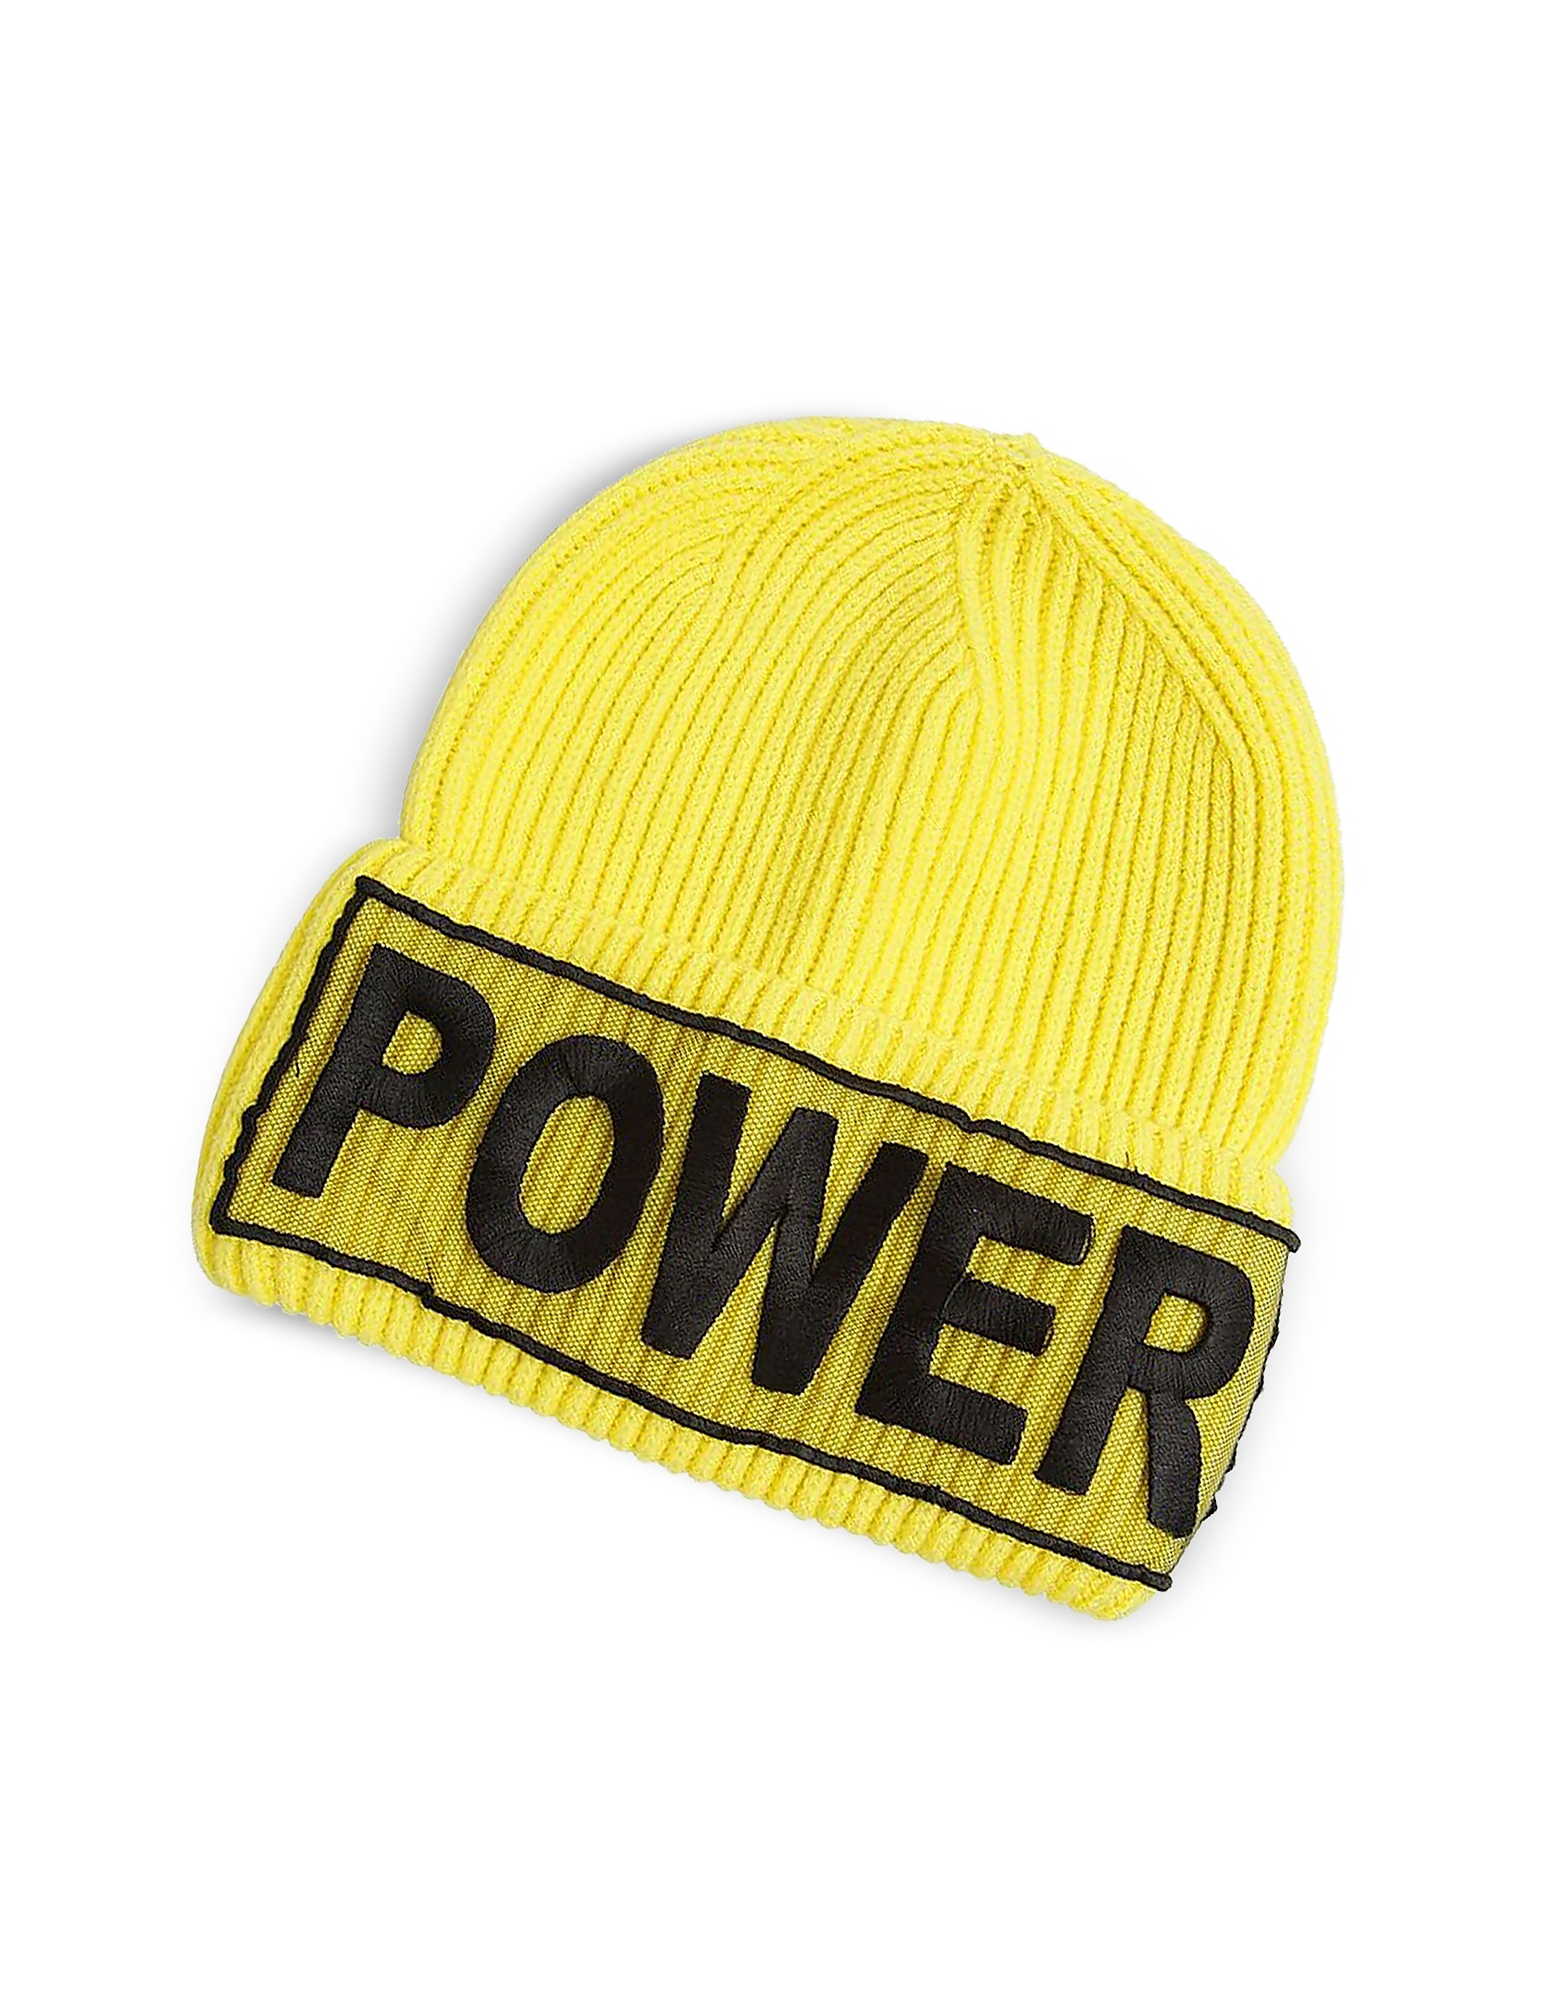 Versace Designer Women's Hats, Power Manifesto Bright Yellow Wool Knit Hat